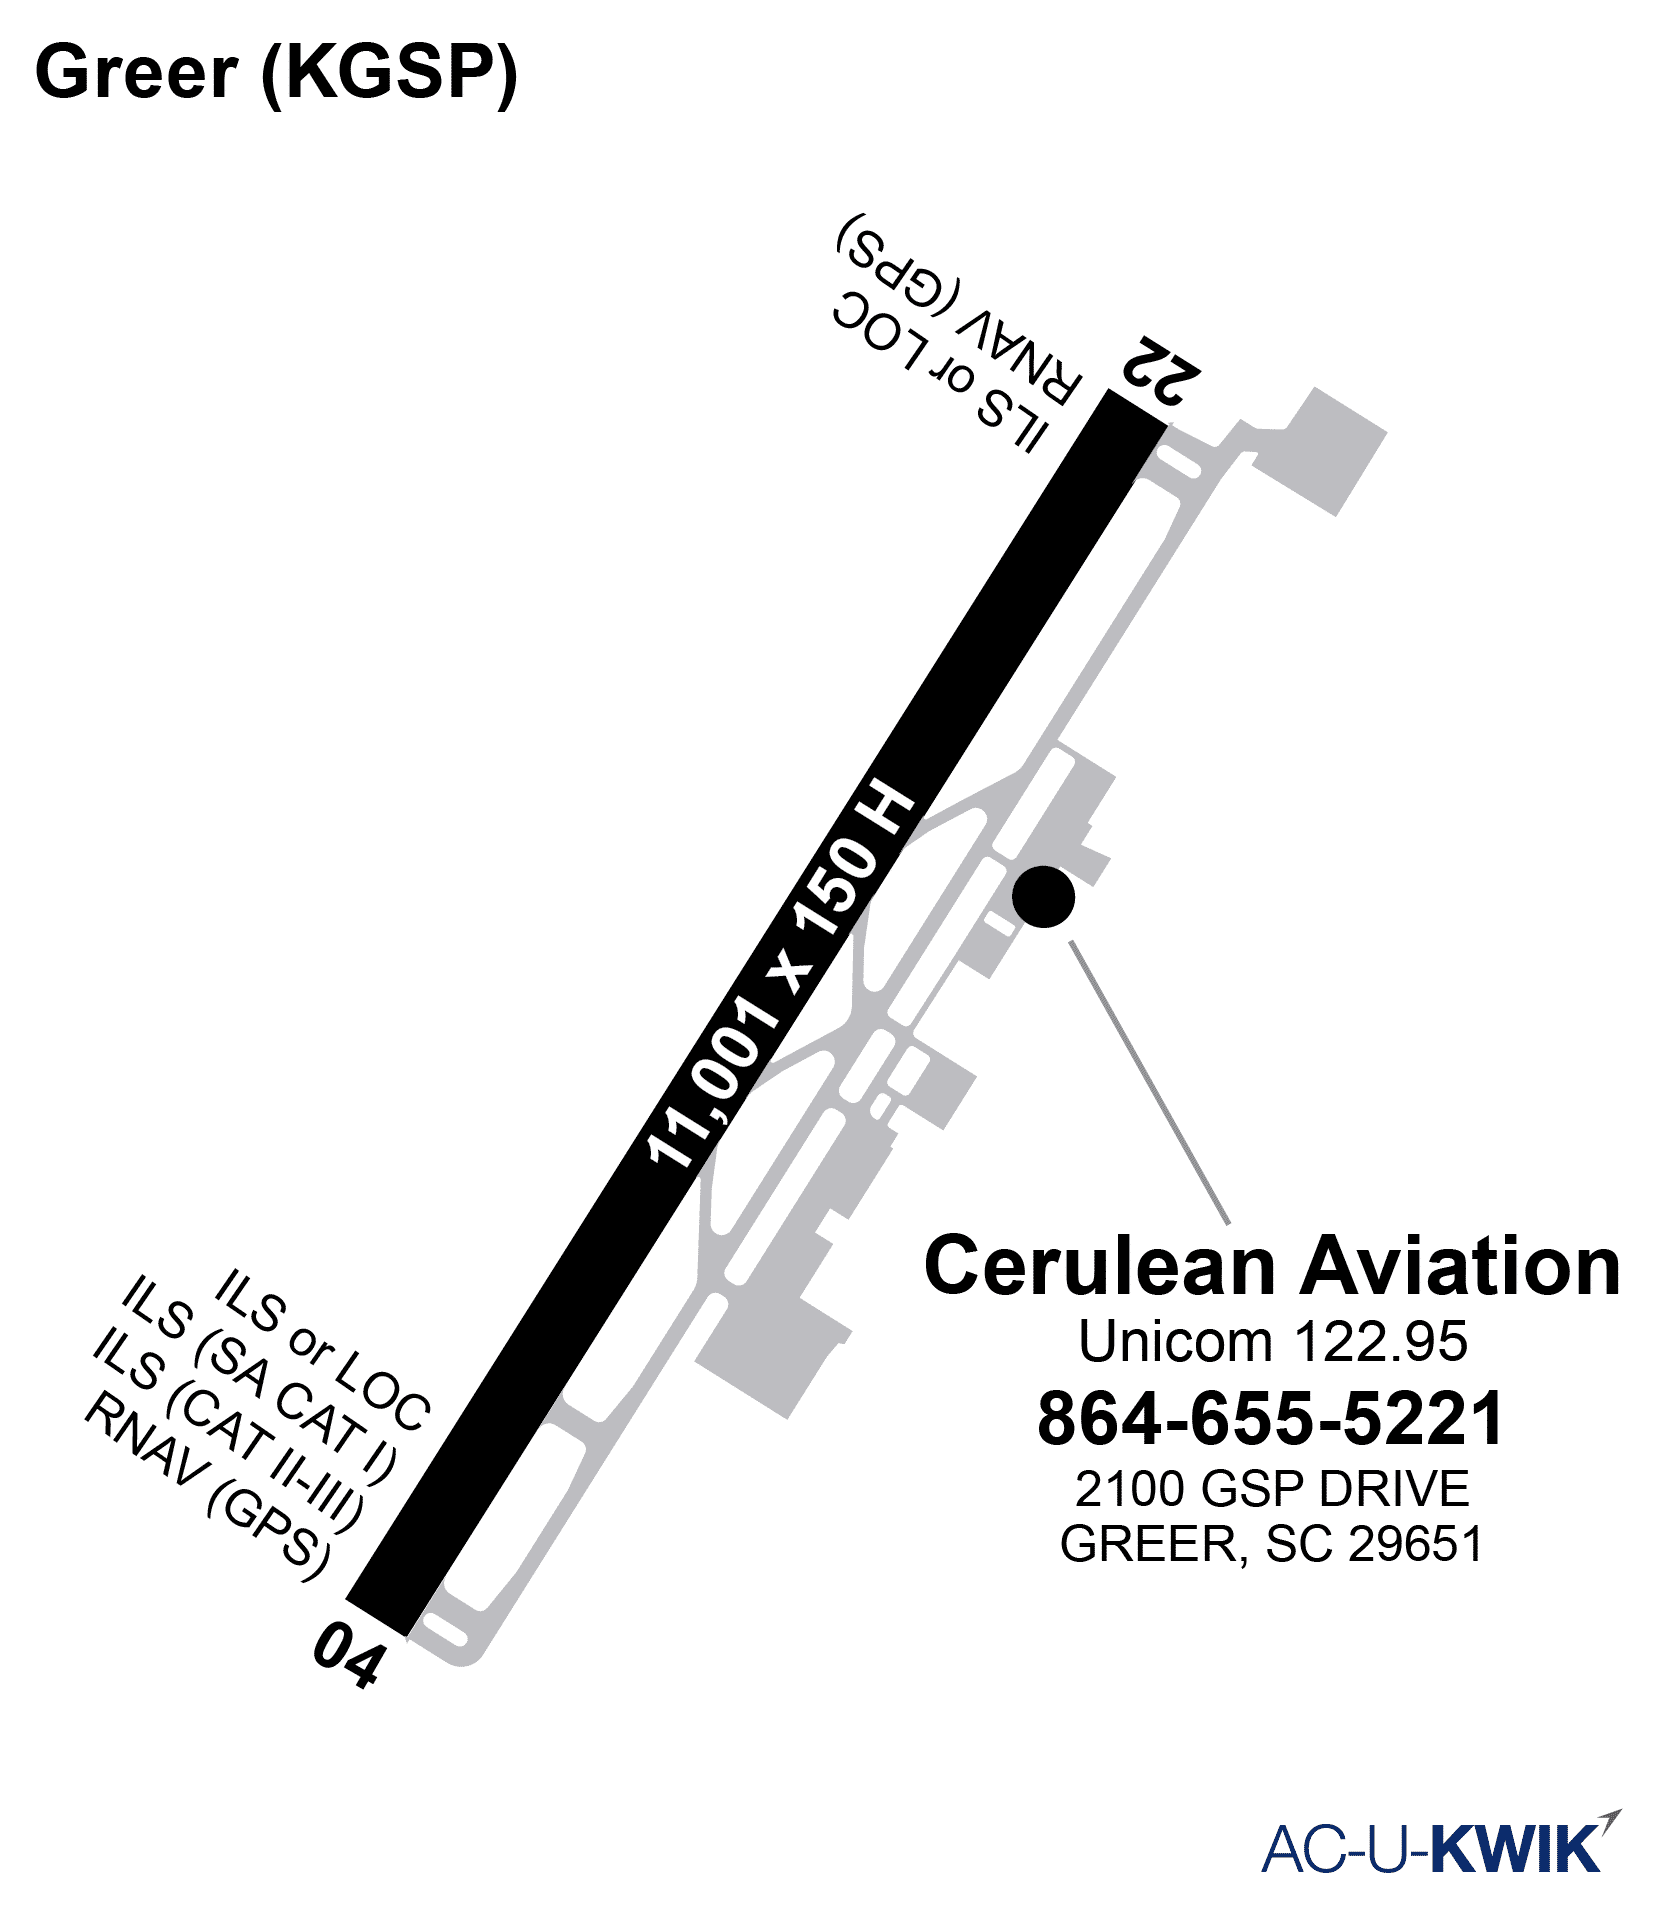 Cerulean Aviation AC-U-KWIK Map